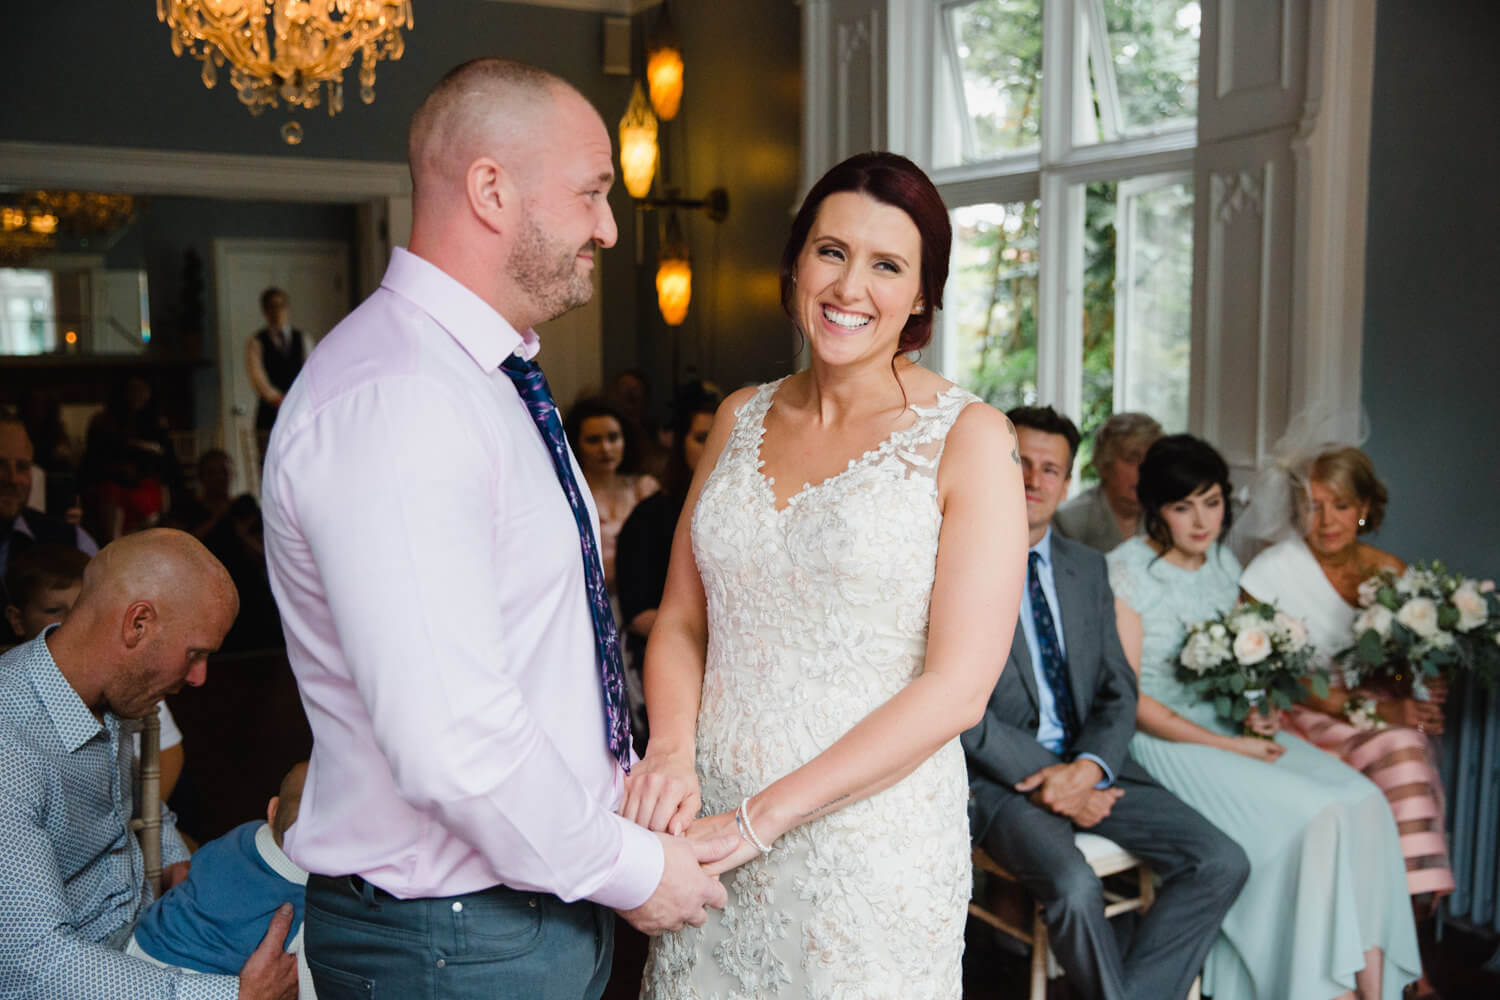 bride laughing and smiling during ceremony while groom looks on